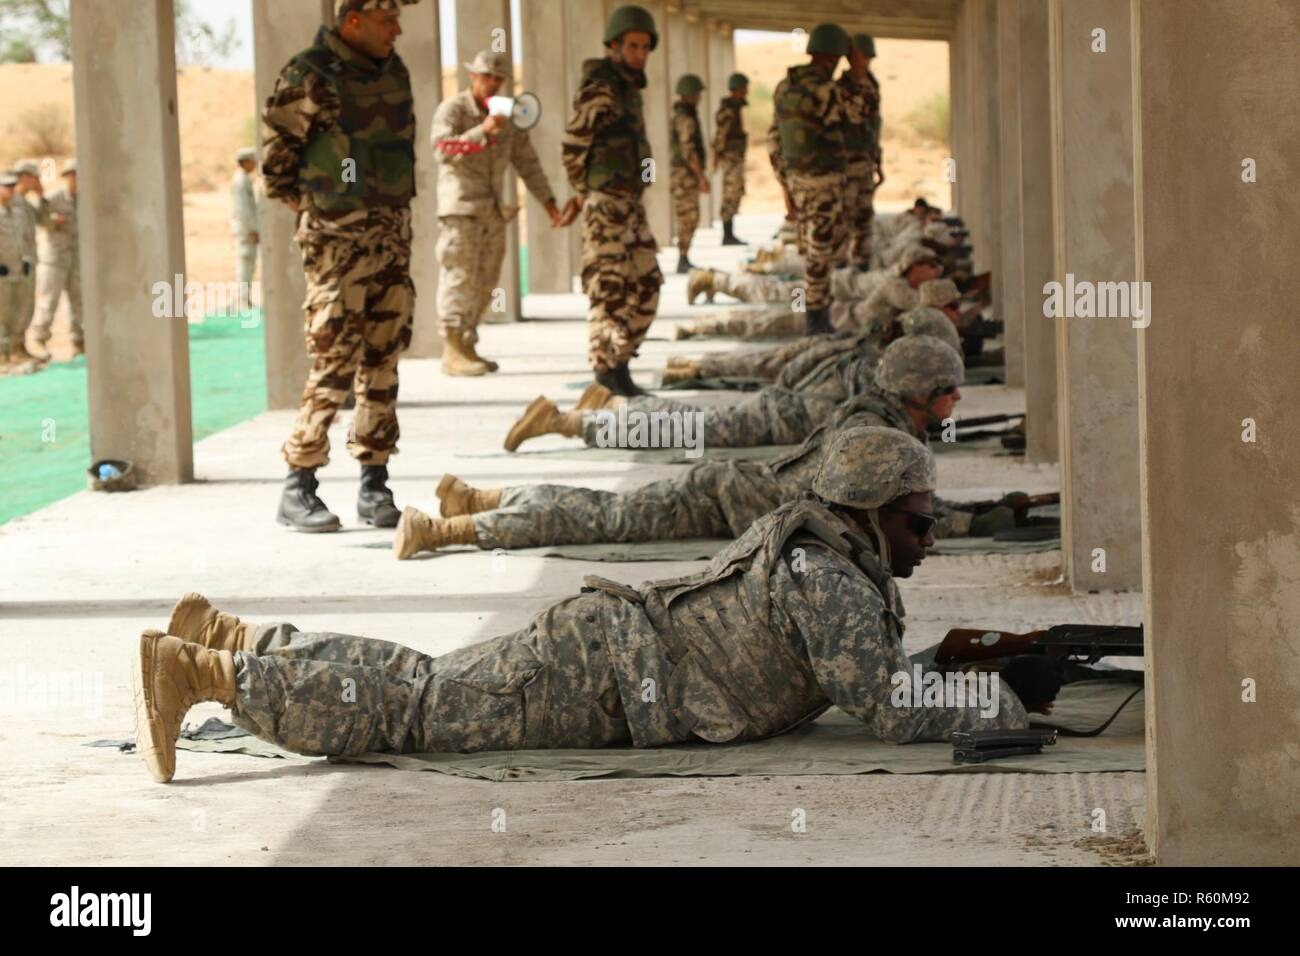 Royal Moroccan Army High Resolution Stock Photography And Images Alamy